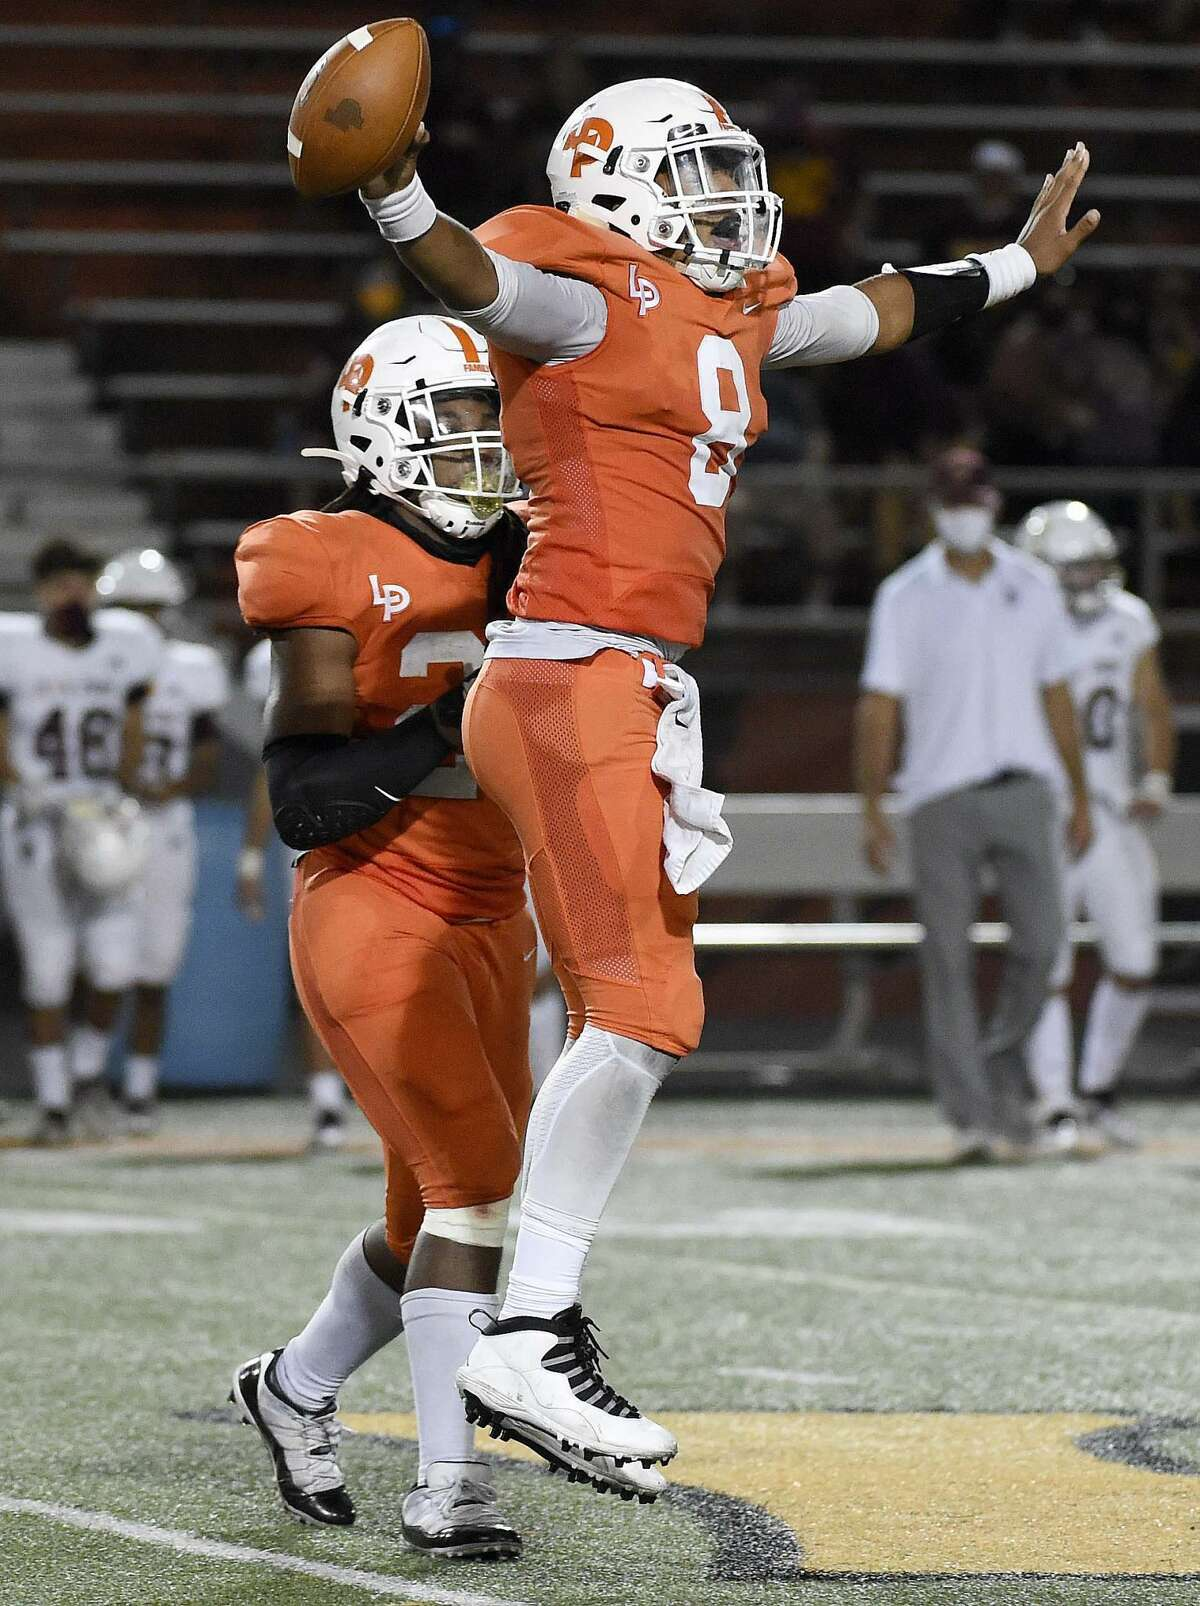 La Porte quarterback Cooper Upshaw, right, celebrates the team's win with Eric Bright after a high school football game against Deer Park, Friday, Sept. 25, 2020, in La Porte.